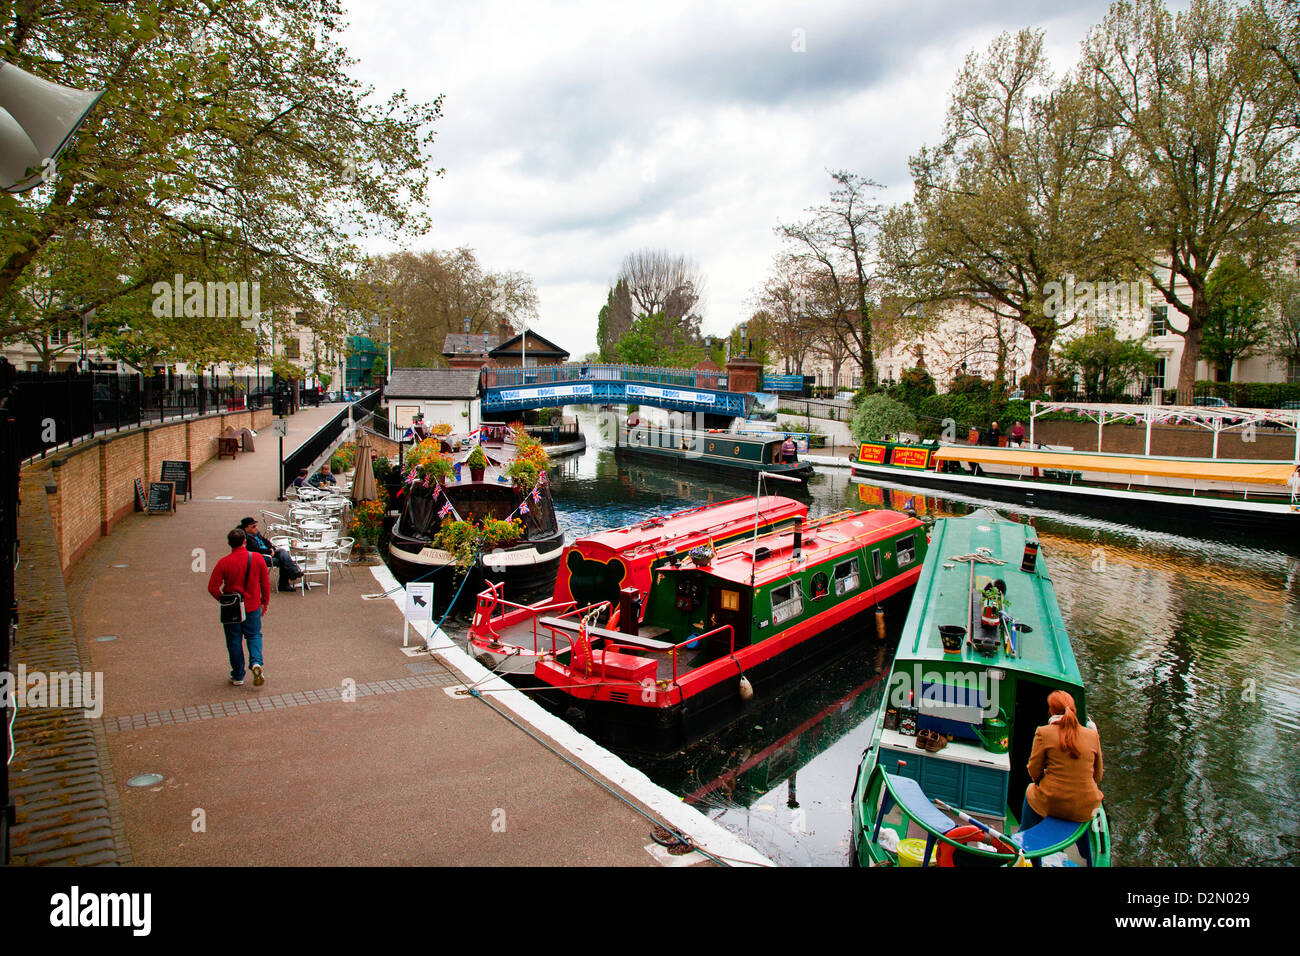 View along the Grand Union Canal, Little Venice, Maida Vale, London, England, United Kingdom, Europe - Stock Image